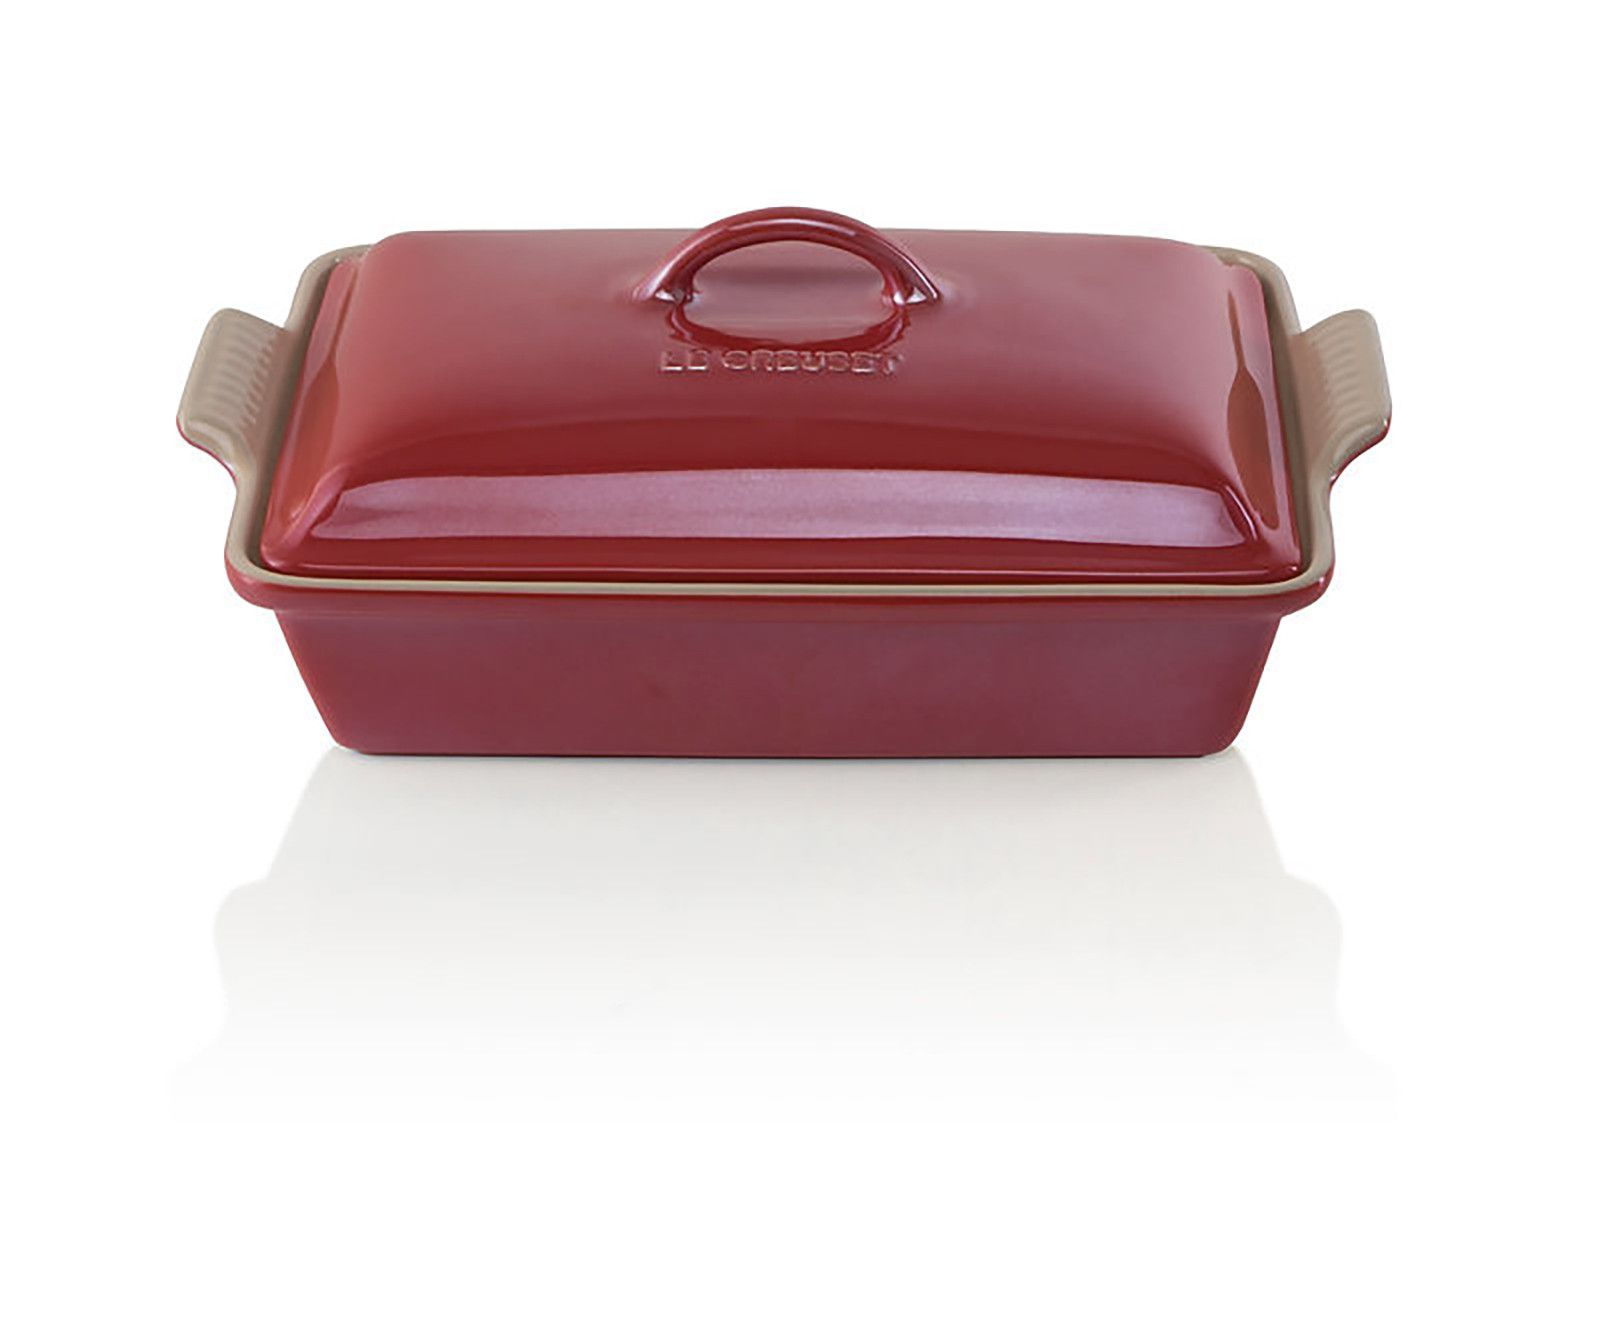 Le Creuset Metallics Collection Heritage Rectangular Casserole